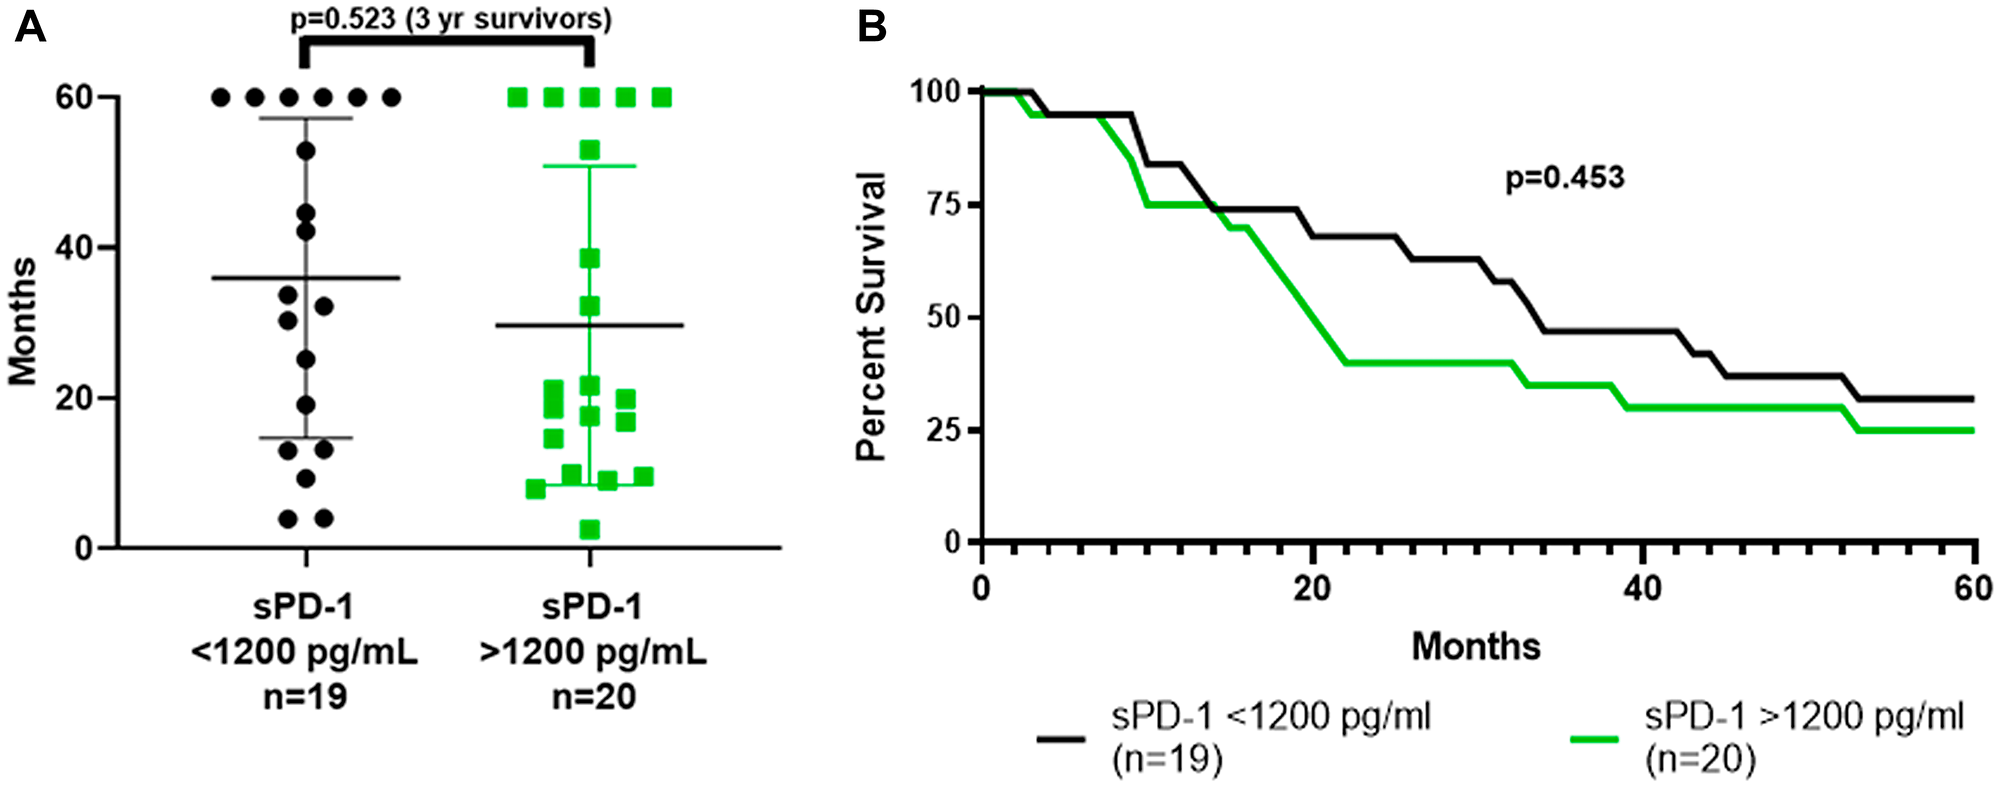 Survival based on whether baseline sPD-1 level was above or below 1,200 pg/mL.